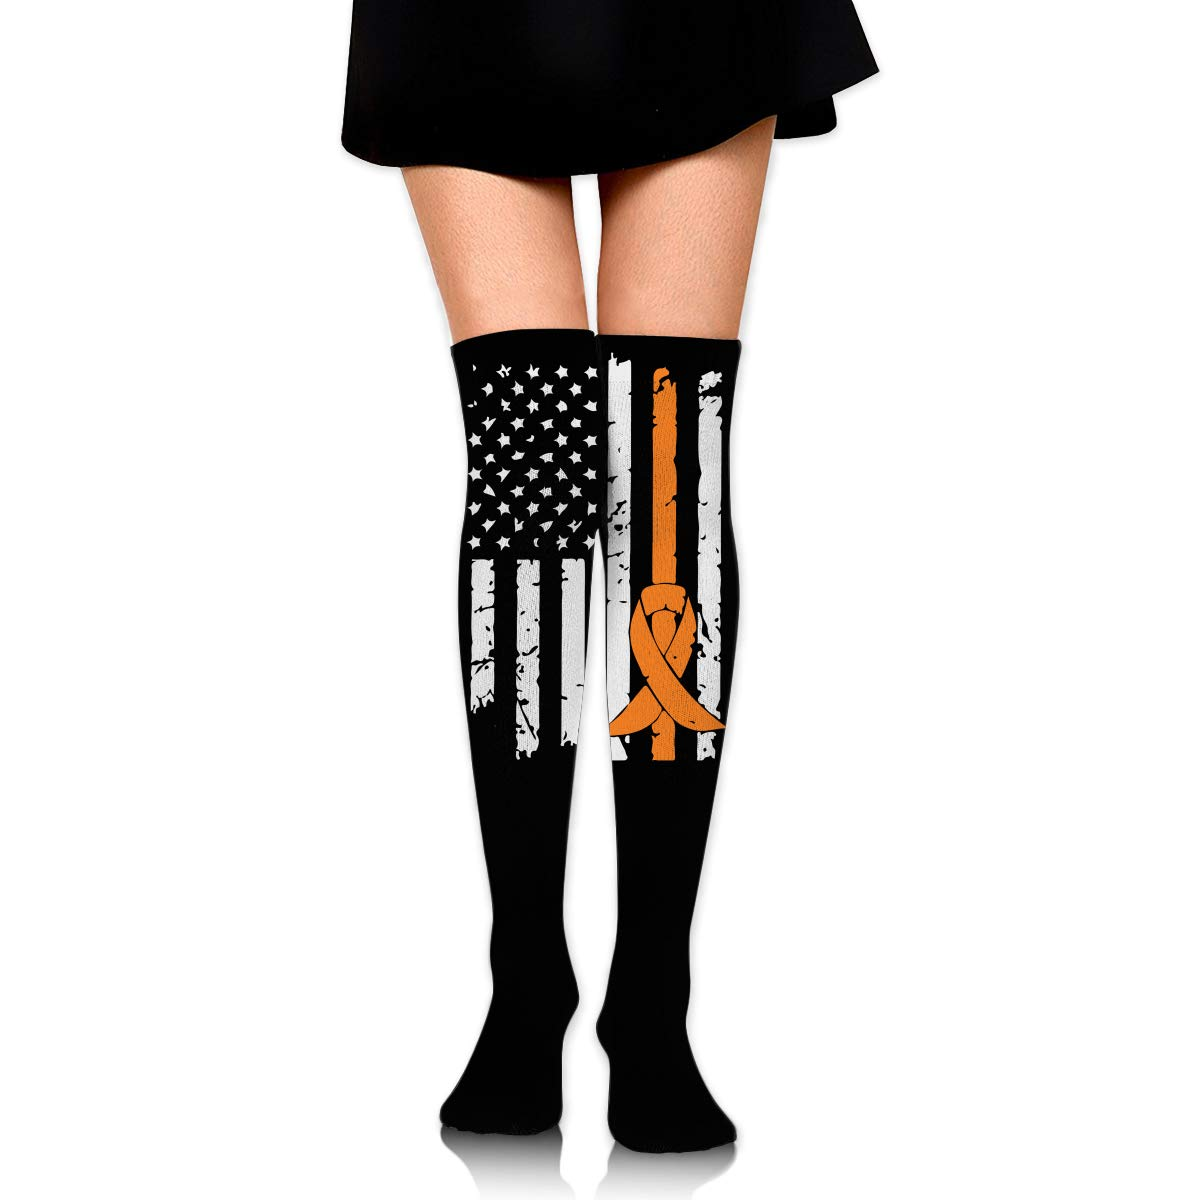 One Size Girls Womens Leukemia Awareness Flag Over Knee Thigh High Stockings Fashion Socks